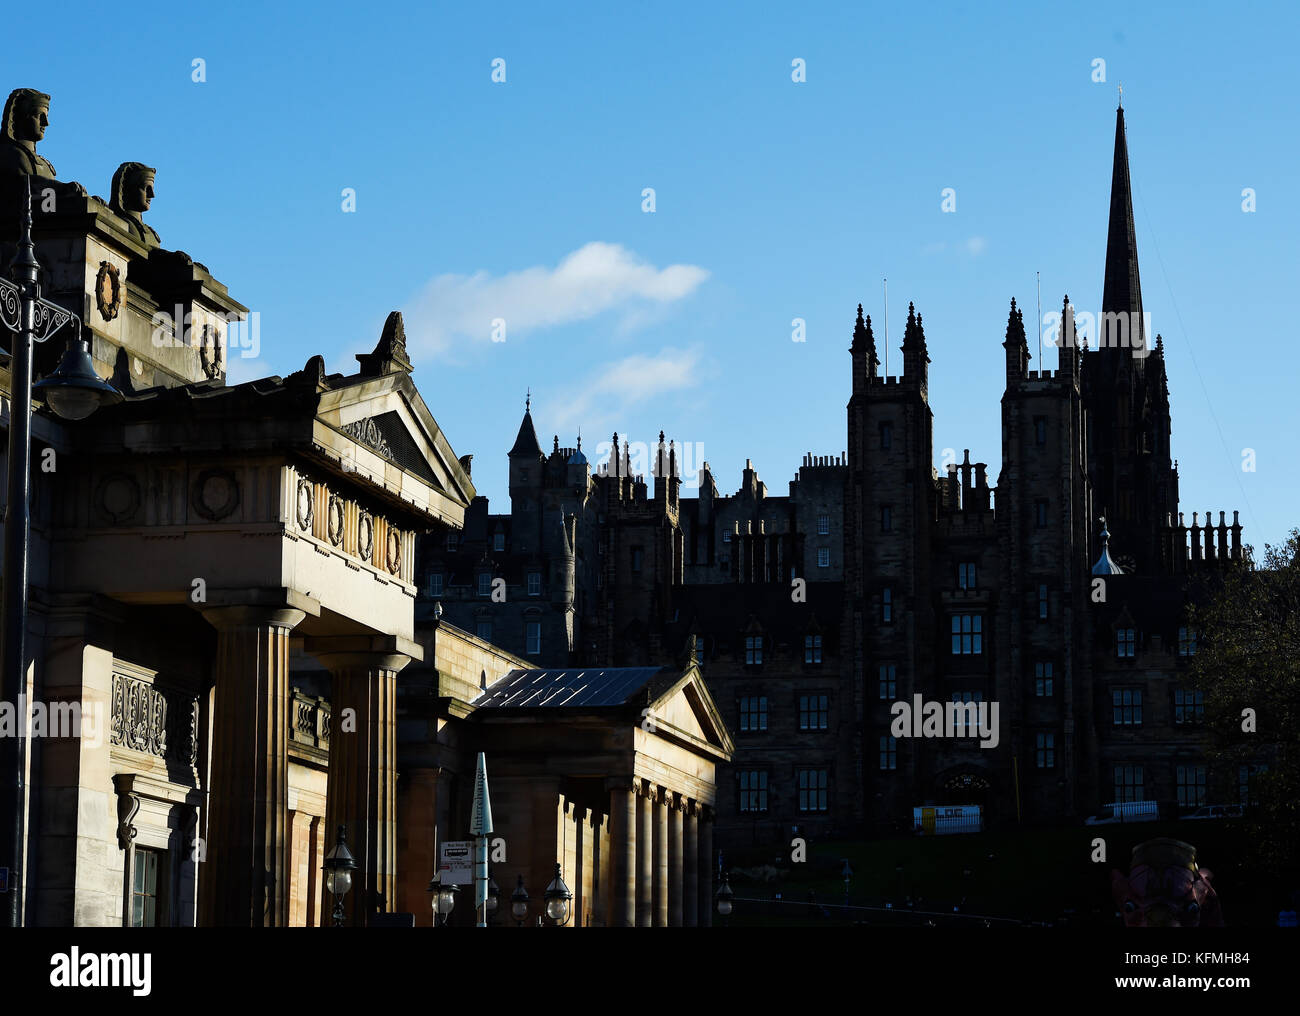 The RSA building caught in the sunlight and the General Assembly halls on the mound in shadow.  Edinburgh - Stock Image